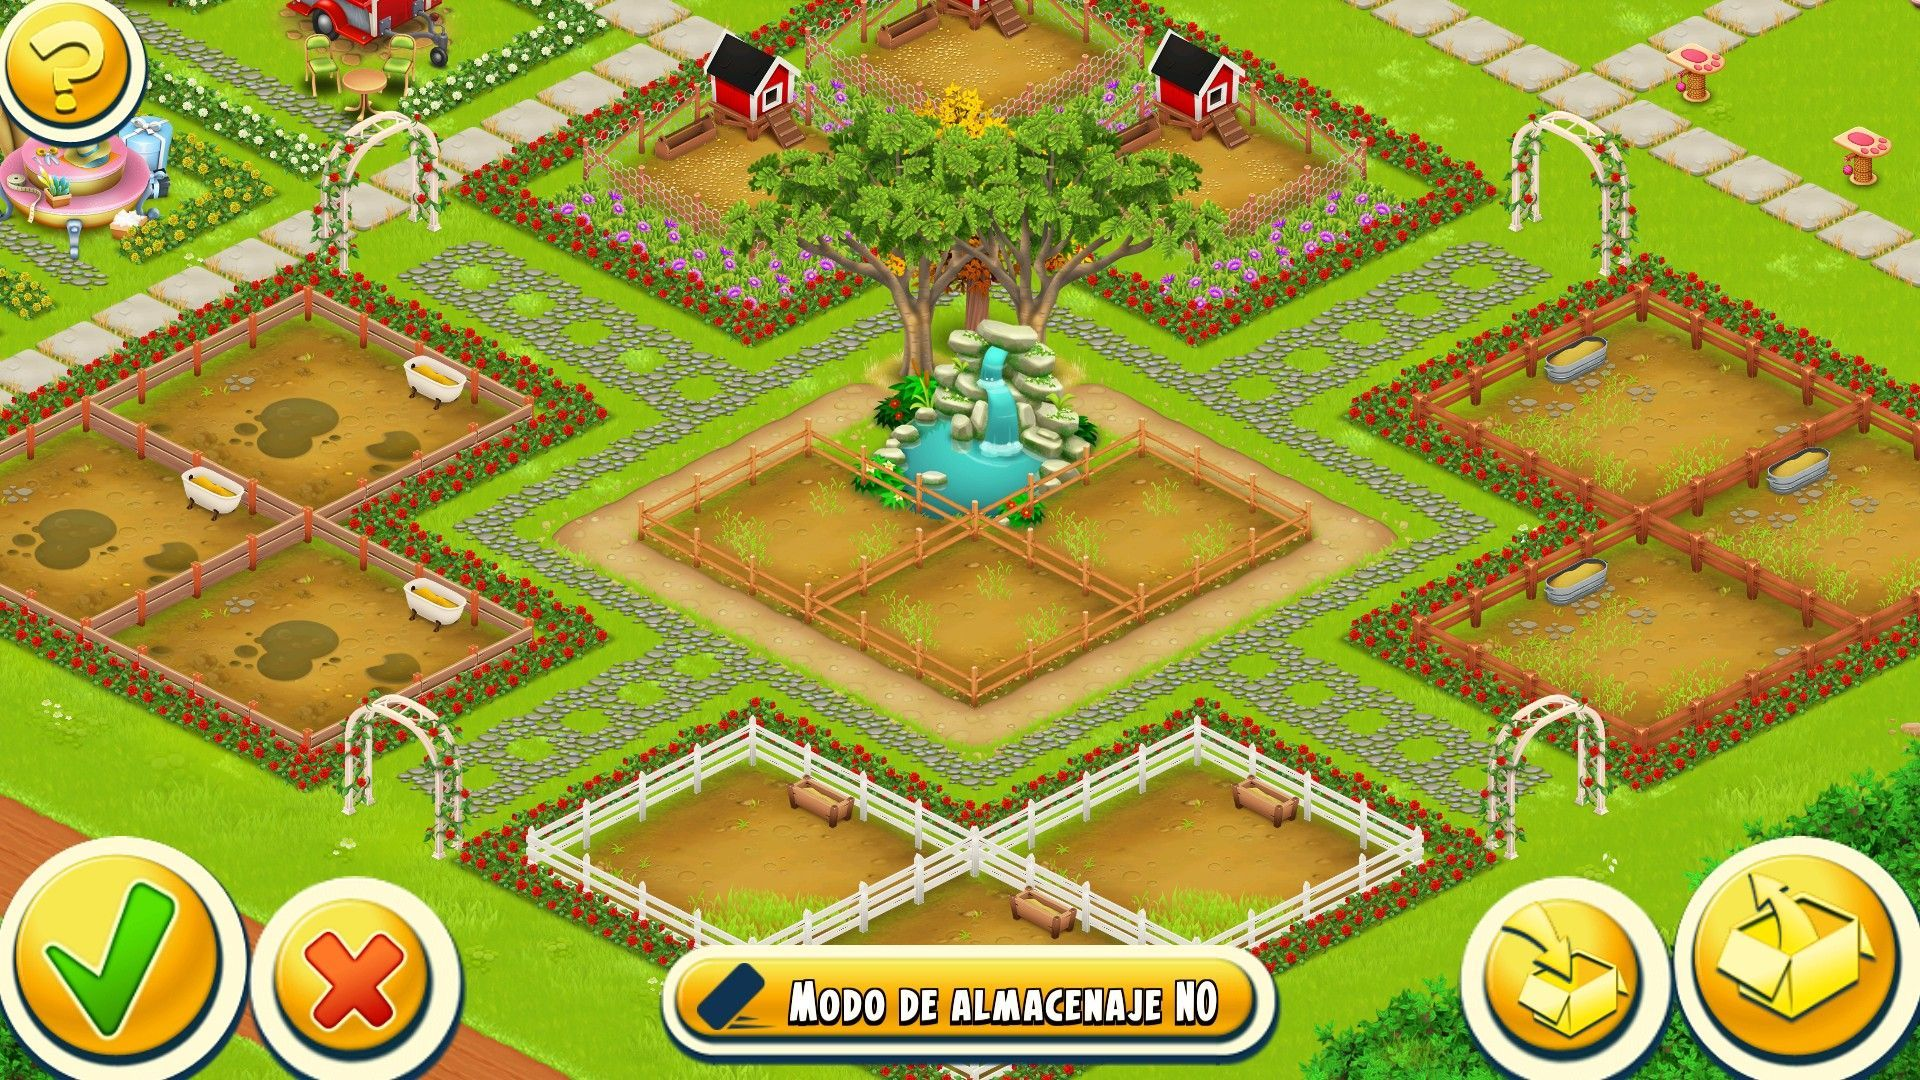 Kewan in 2020 Hayday farm design, Farm design, Hay day